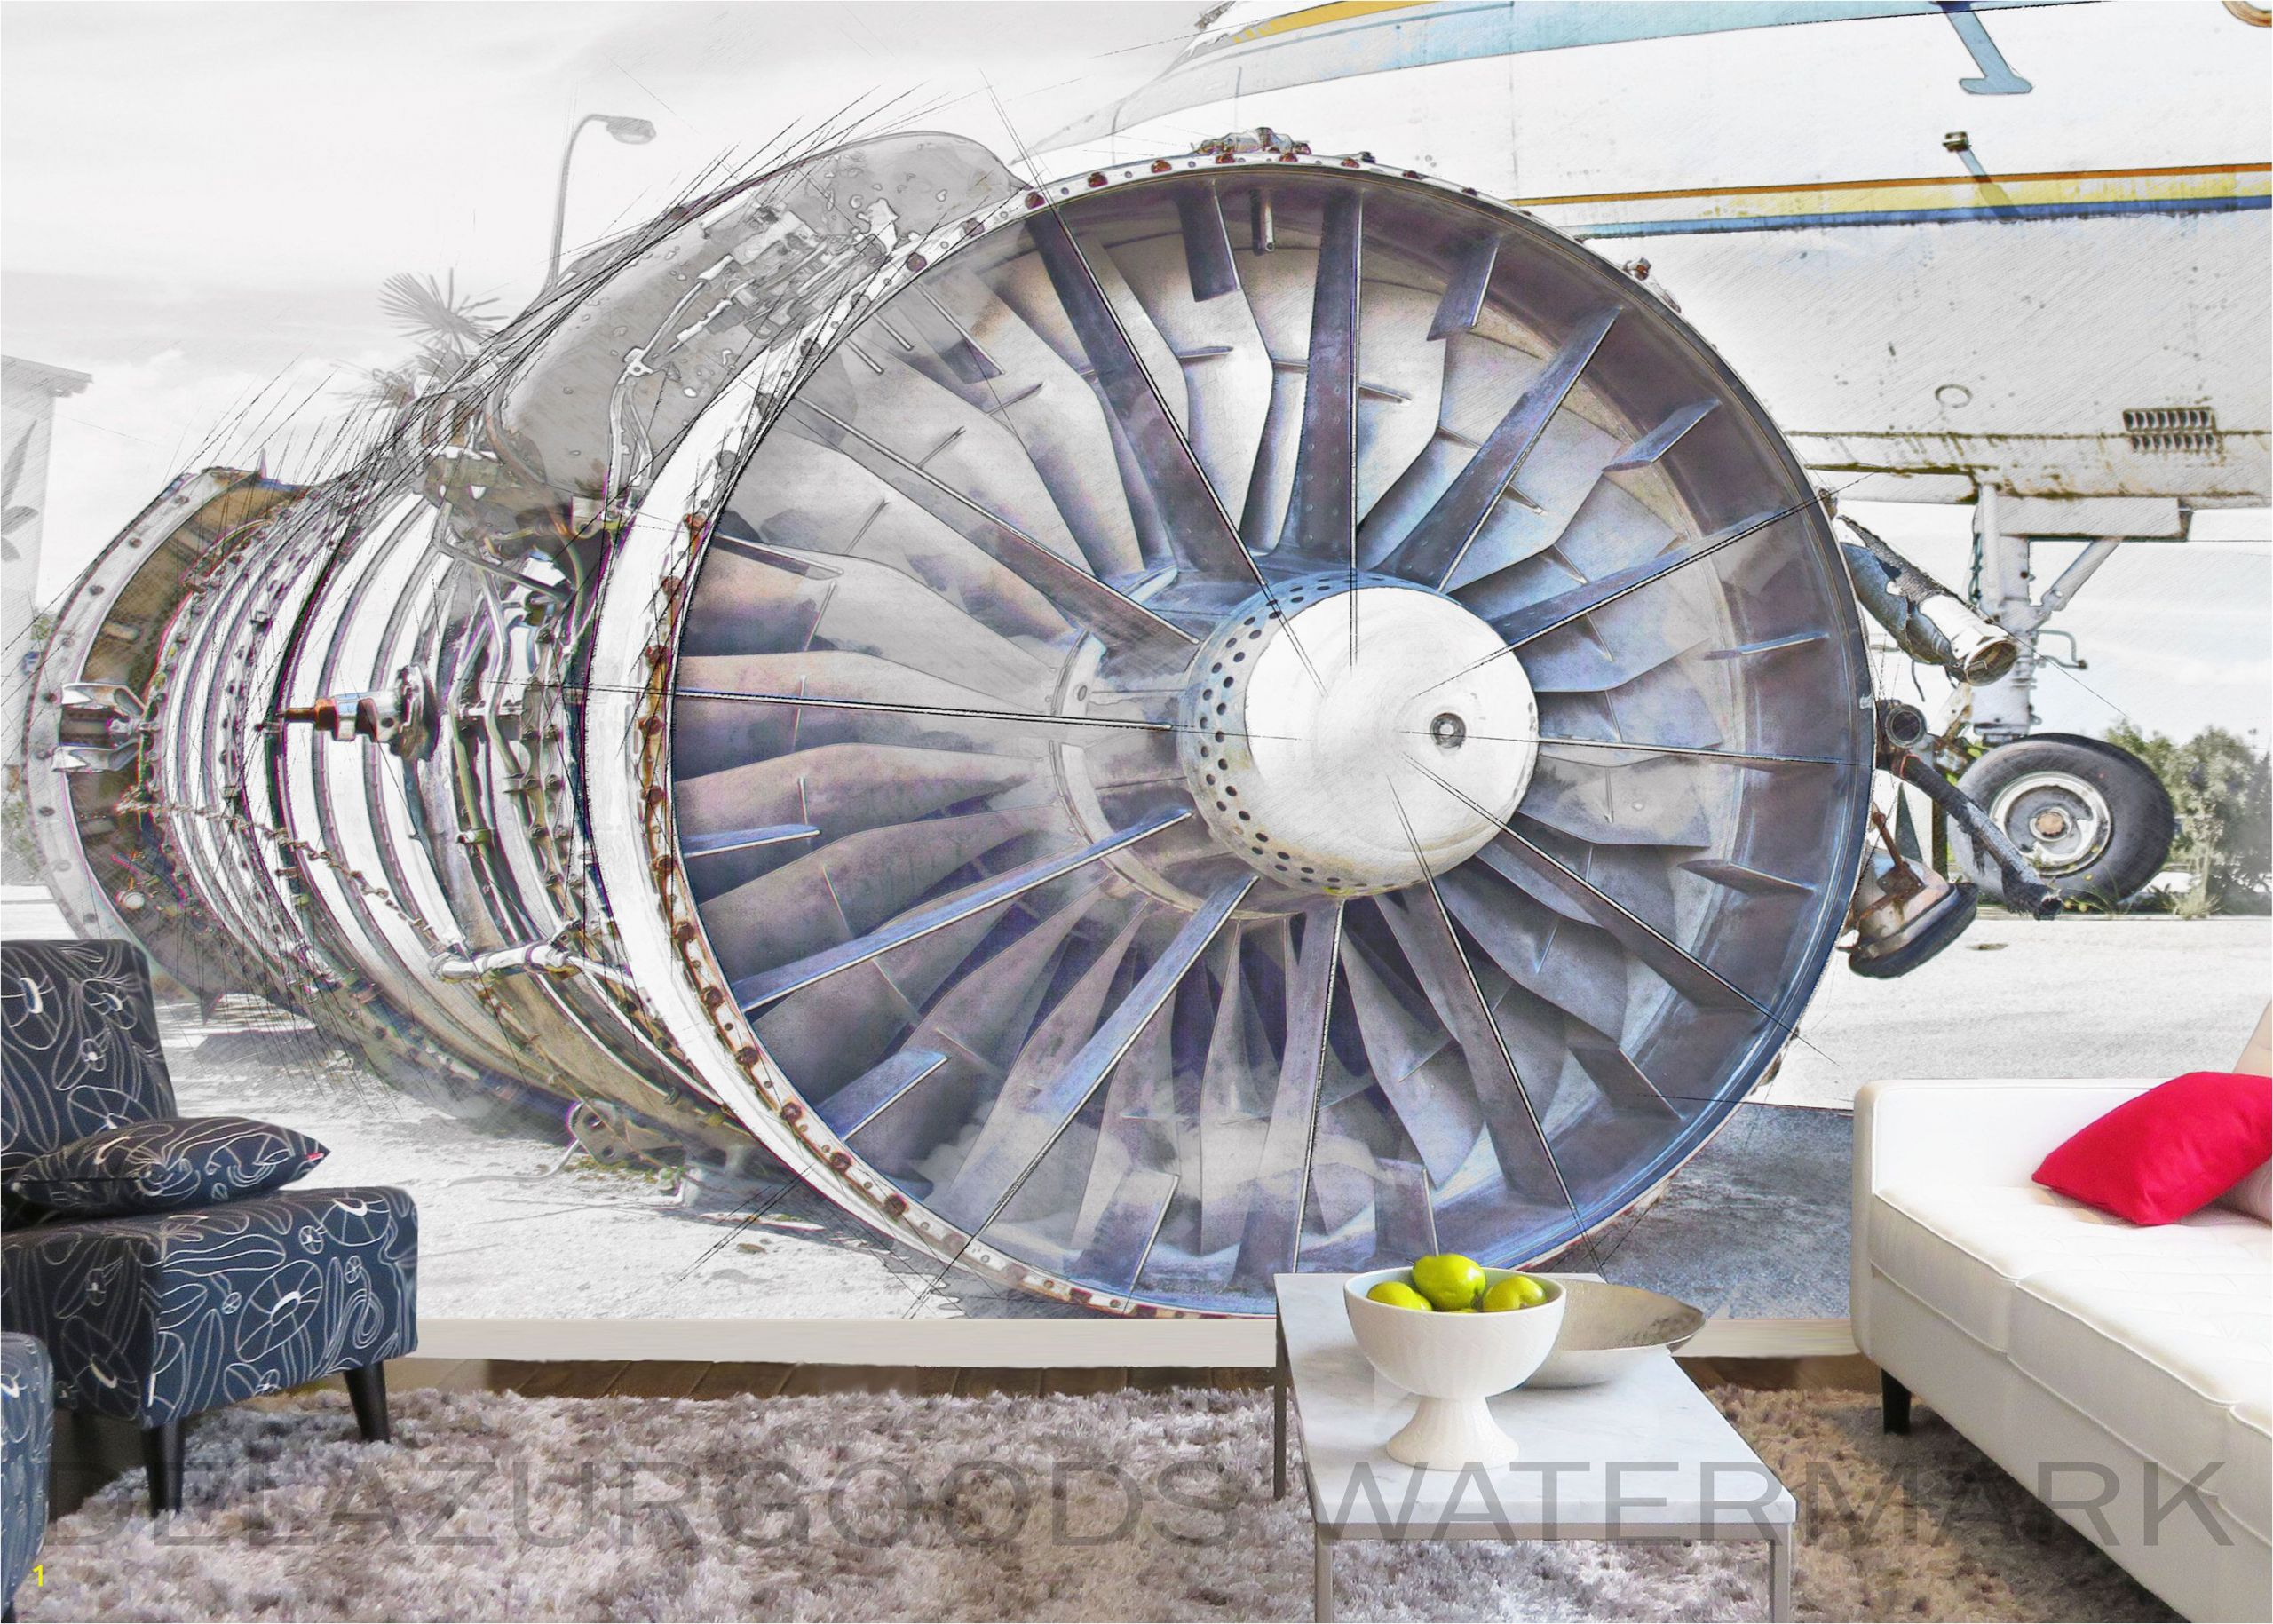 Wall Mural Installation Instructions Airplane Engine Wallpaper Peel and Stick